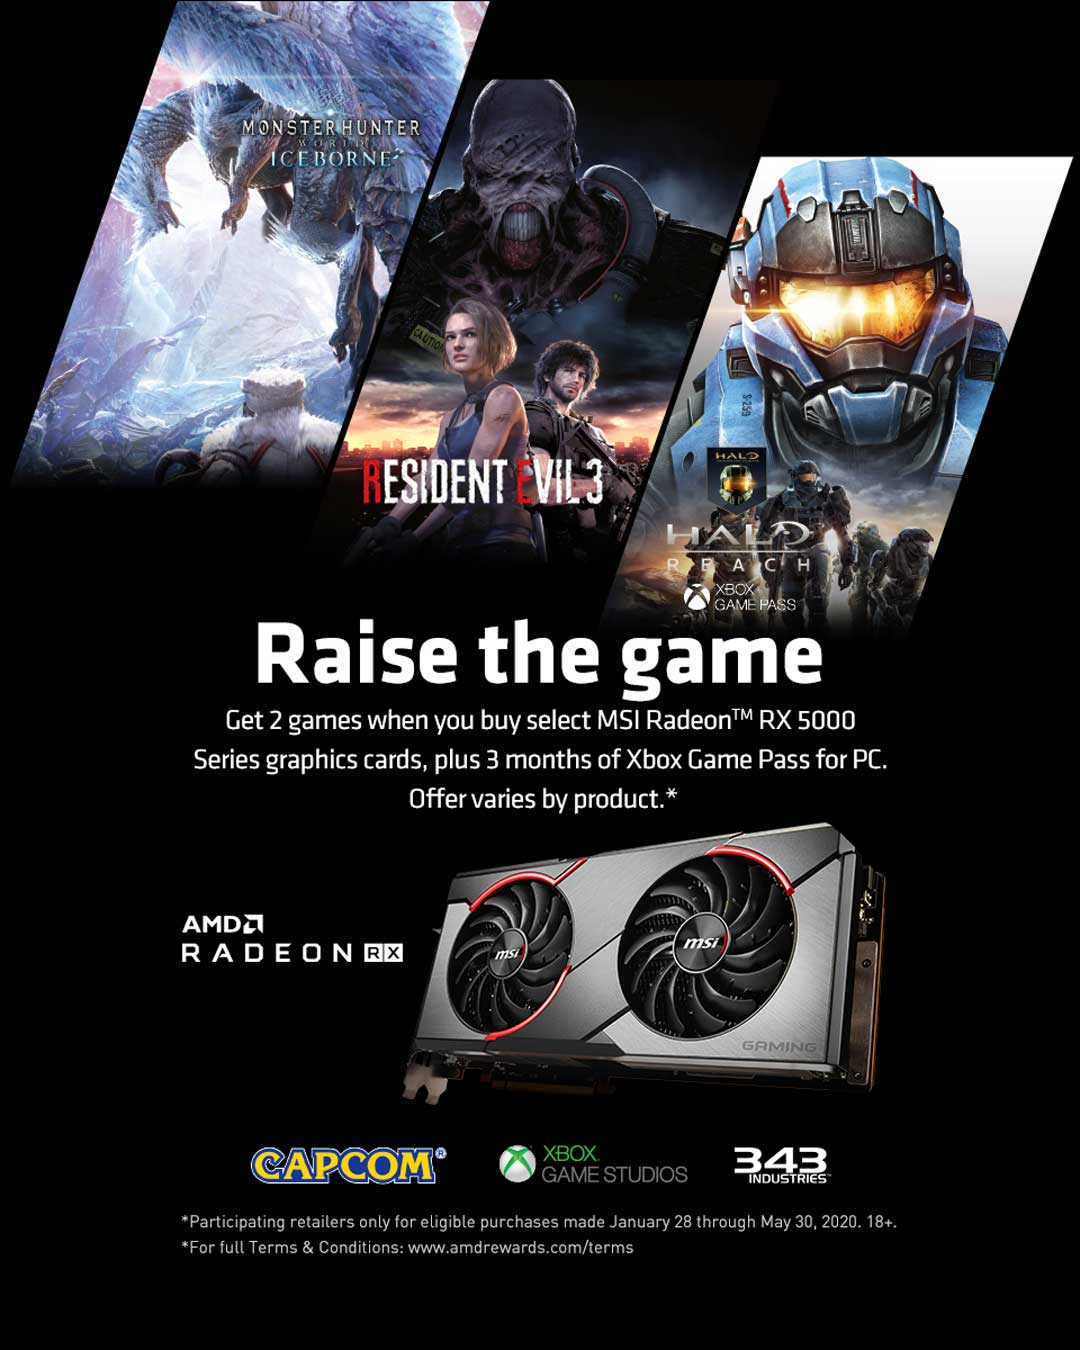 AMD 2020 Raise the Game